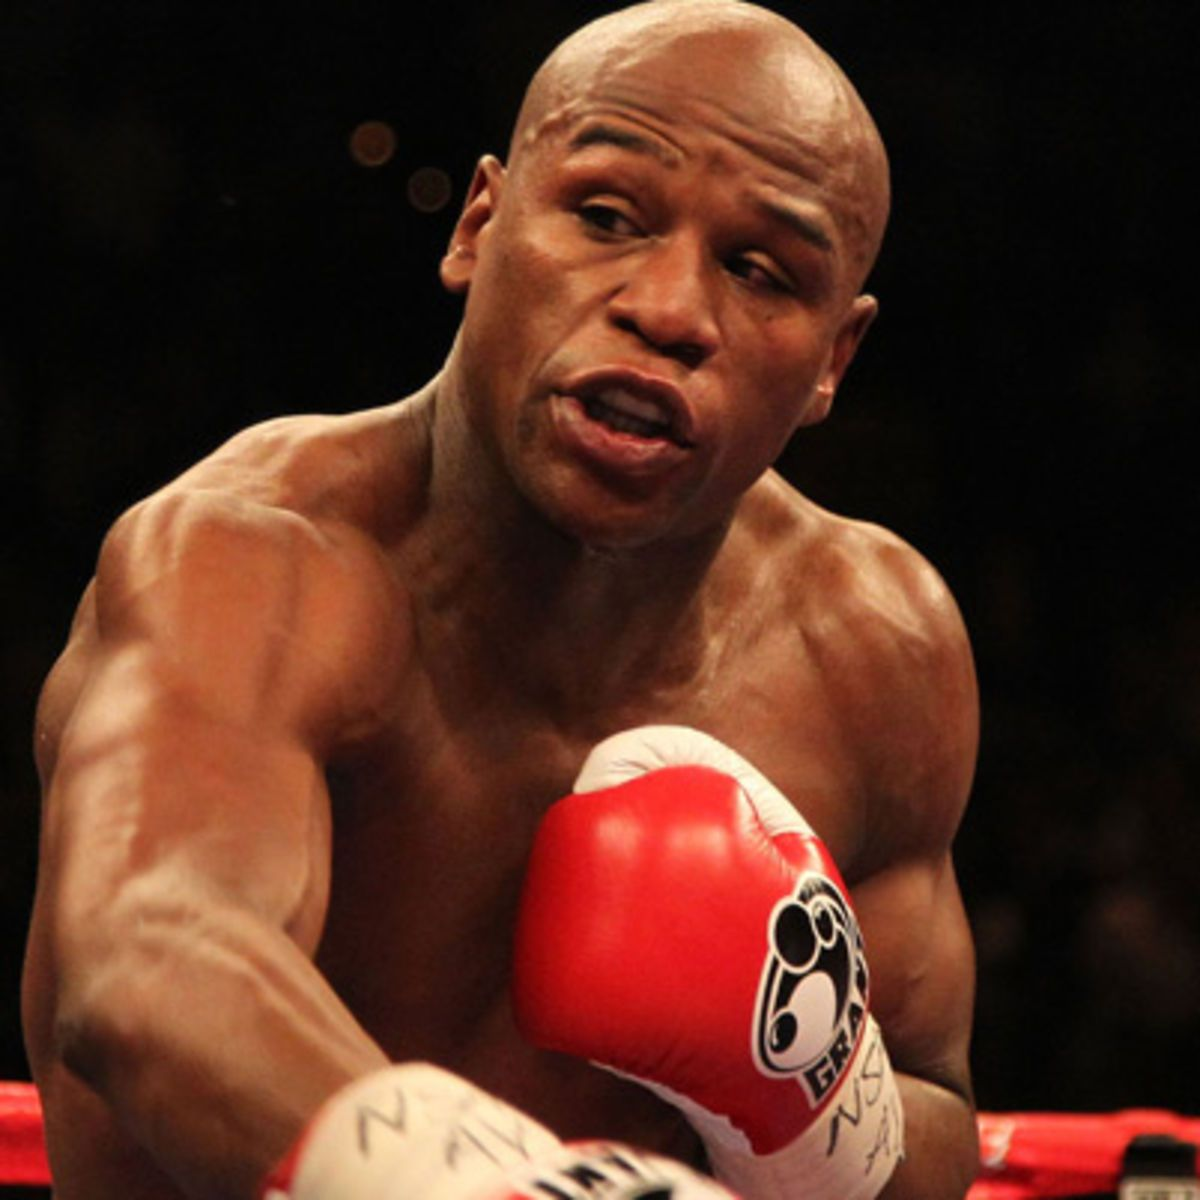 Learn more about professional boxer Floyd Mayweather ...